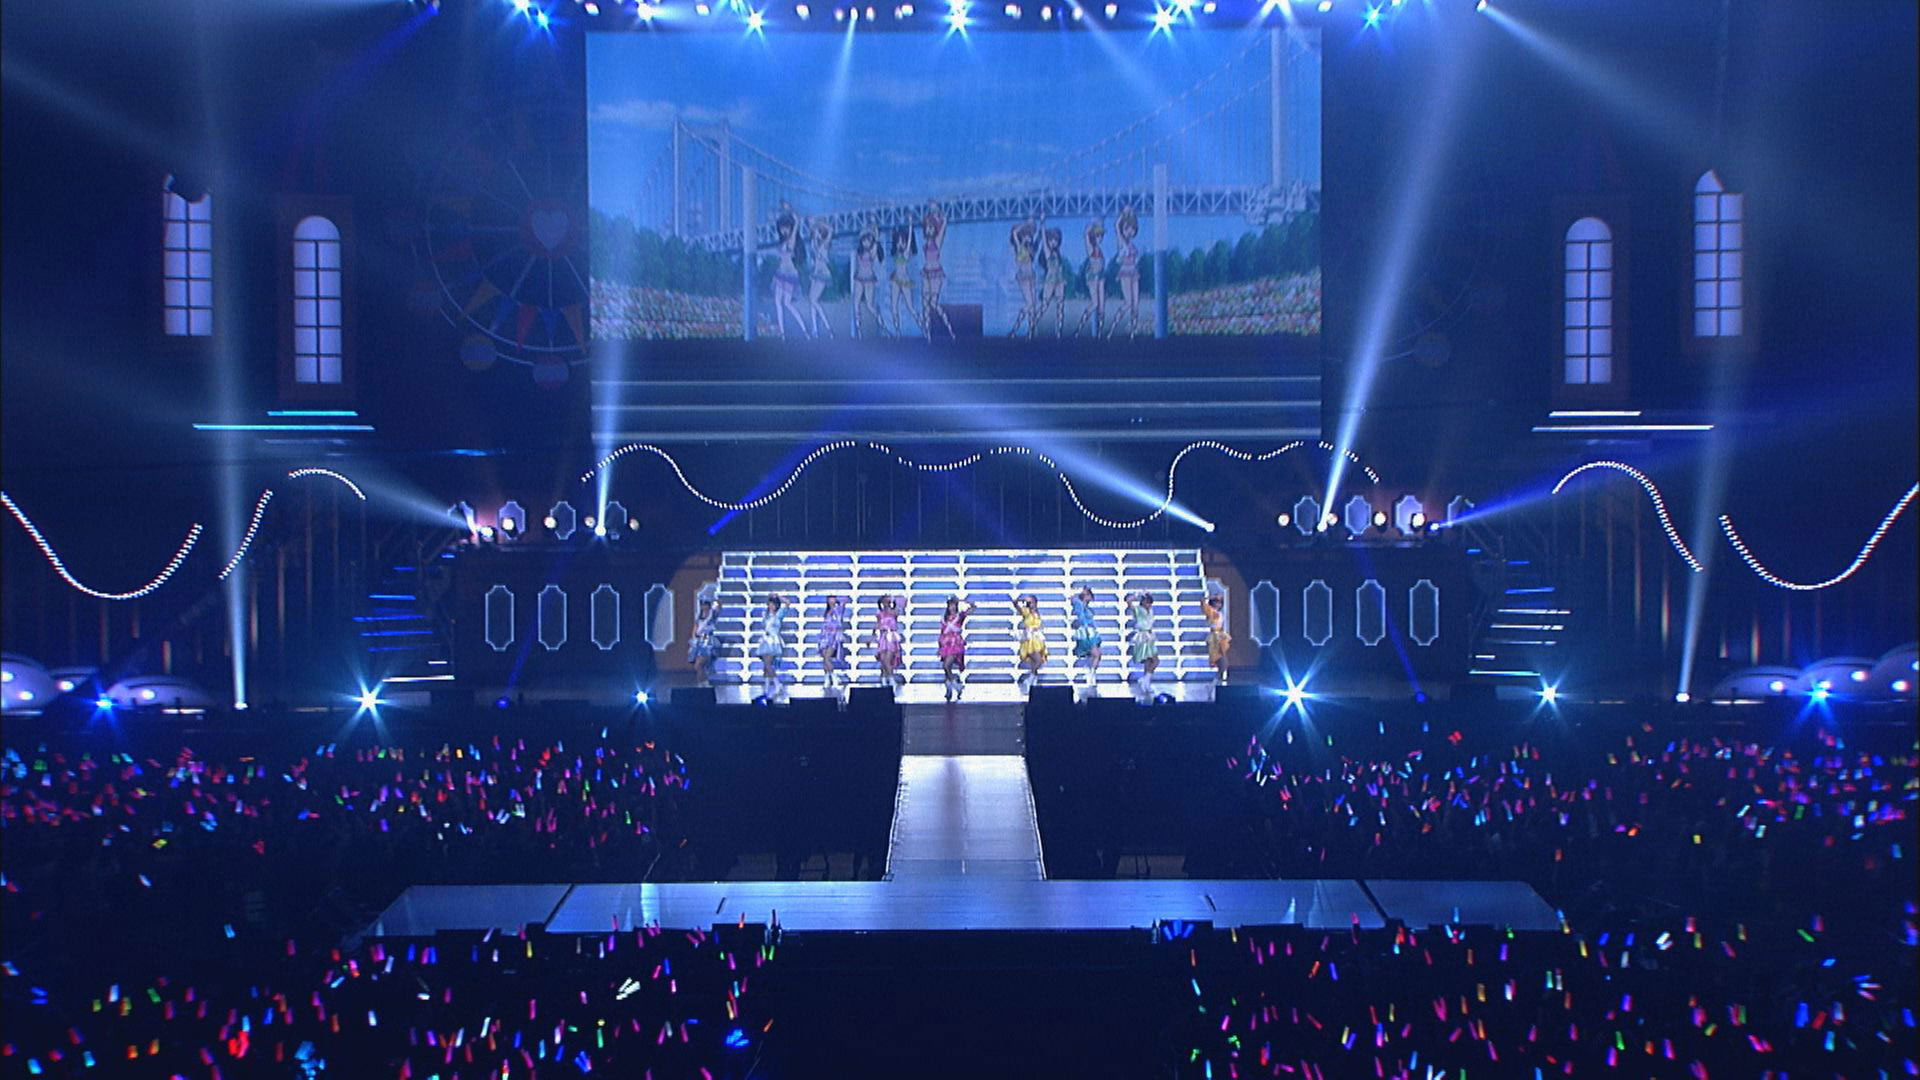 ラブライブ! μ's →NEXT LoveLive! 2014 ~ENDLESS PARADE~